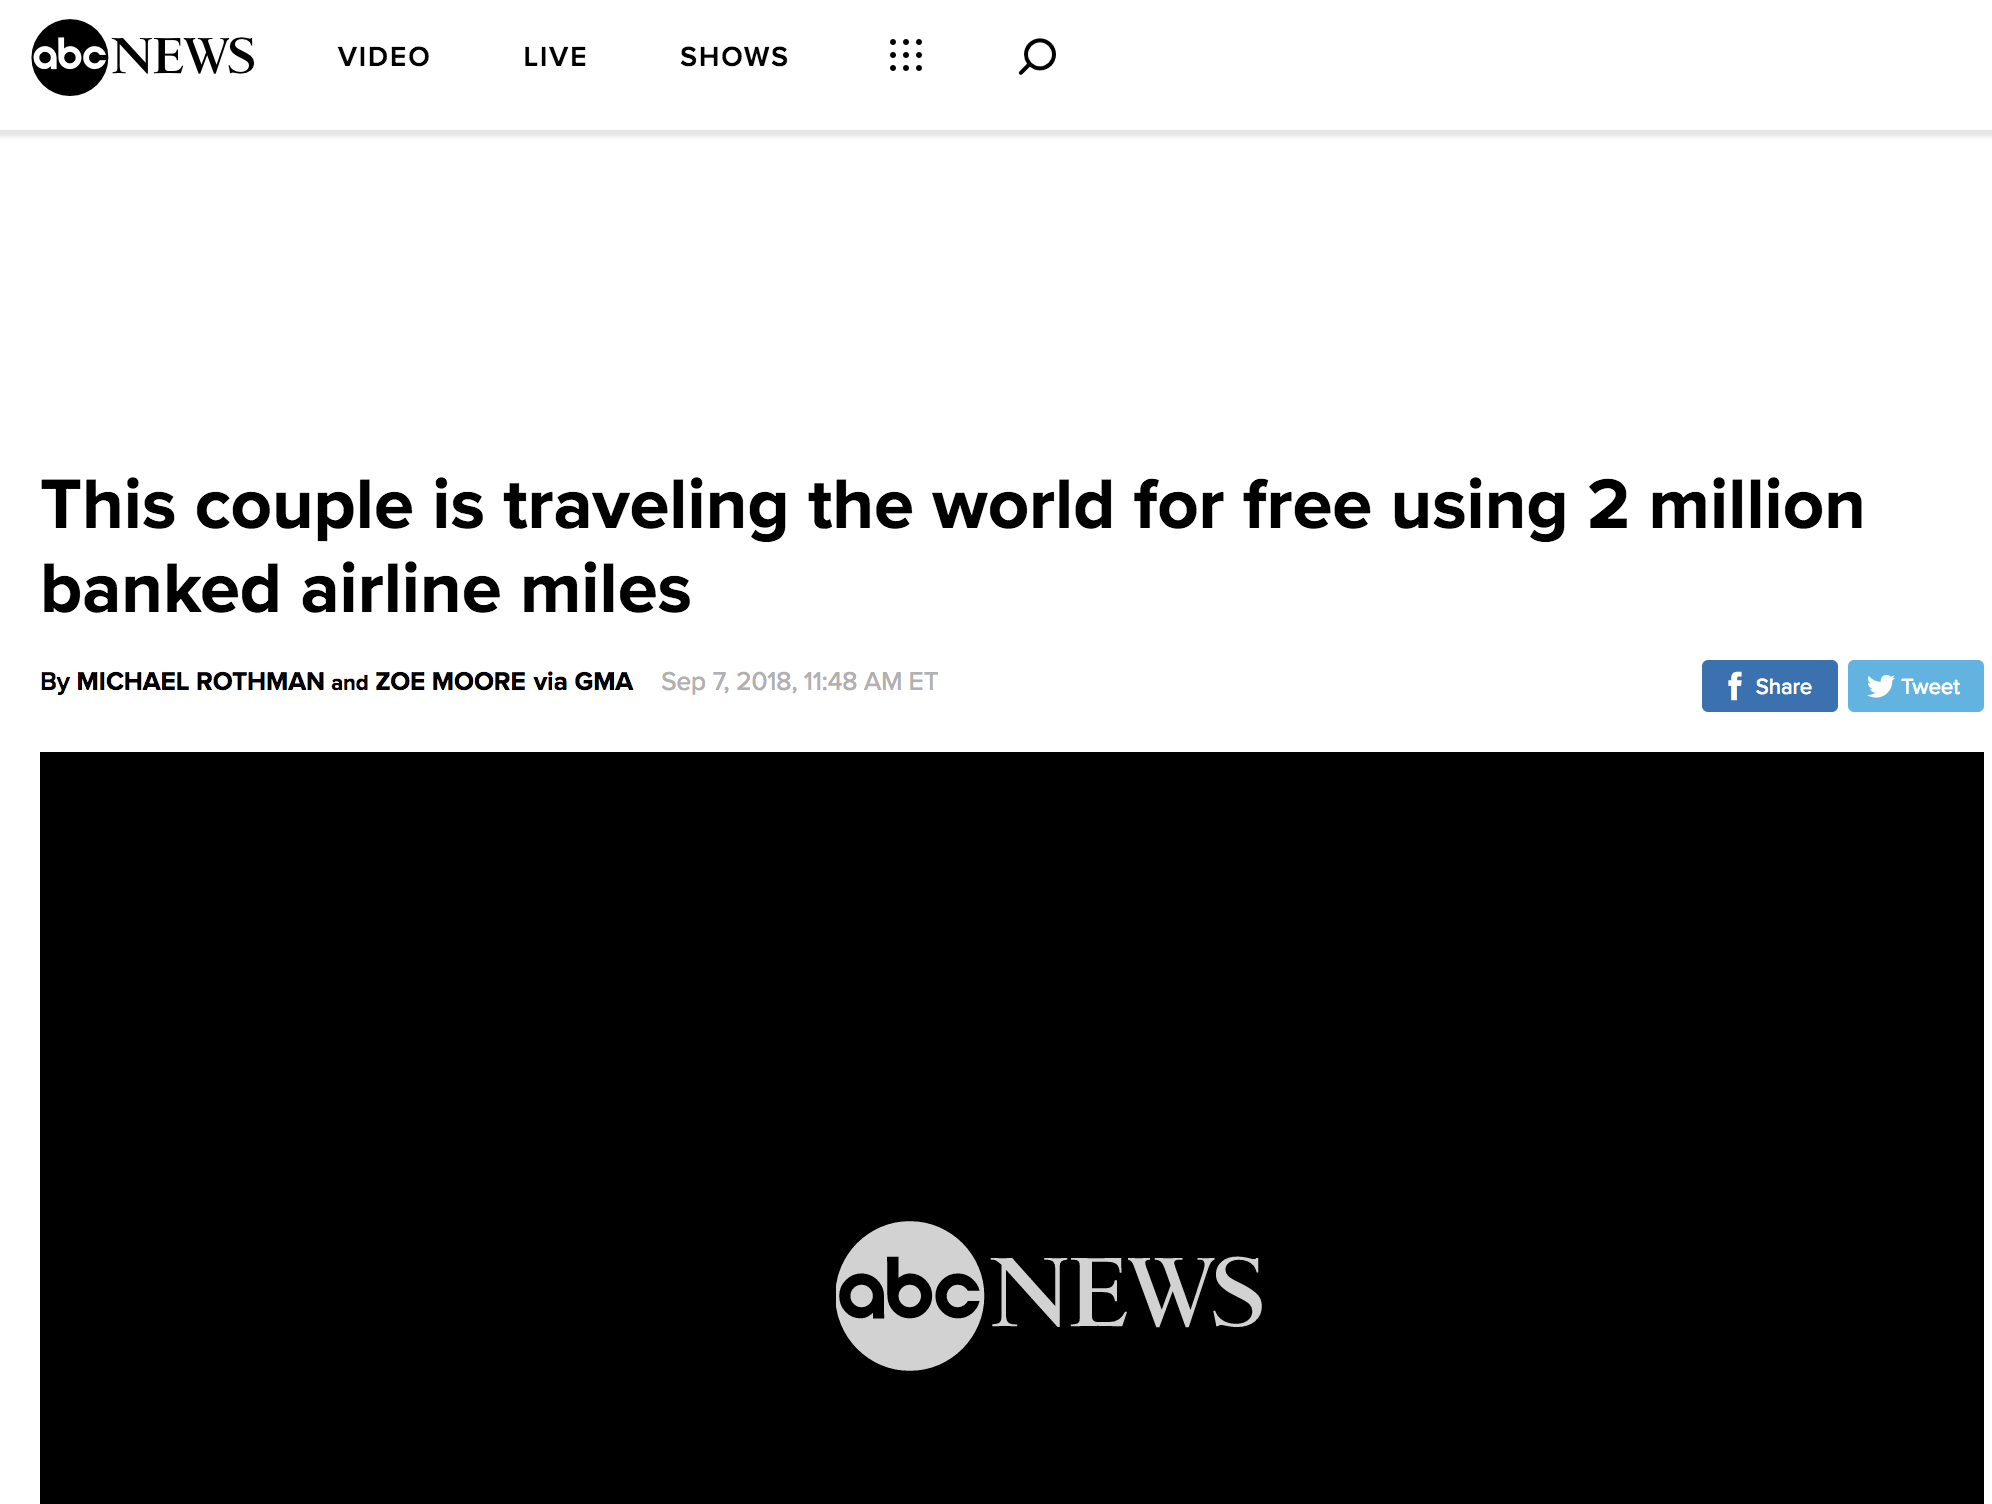 ABC NEWS - This couple is traveling the world for free using 2 million banked airline miles